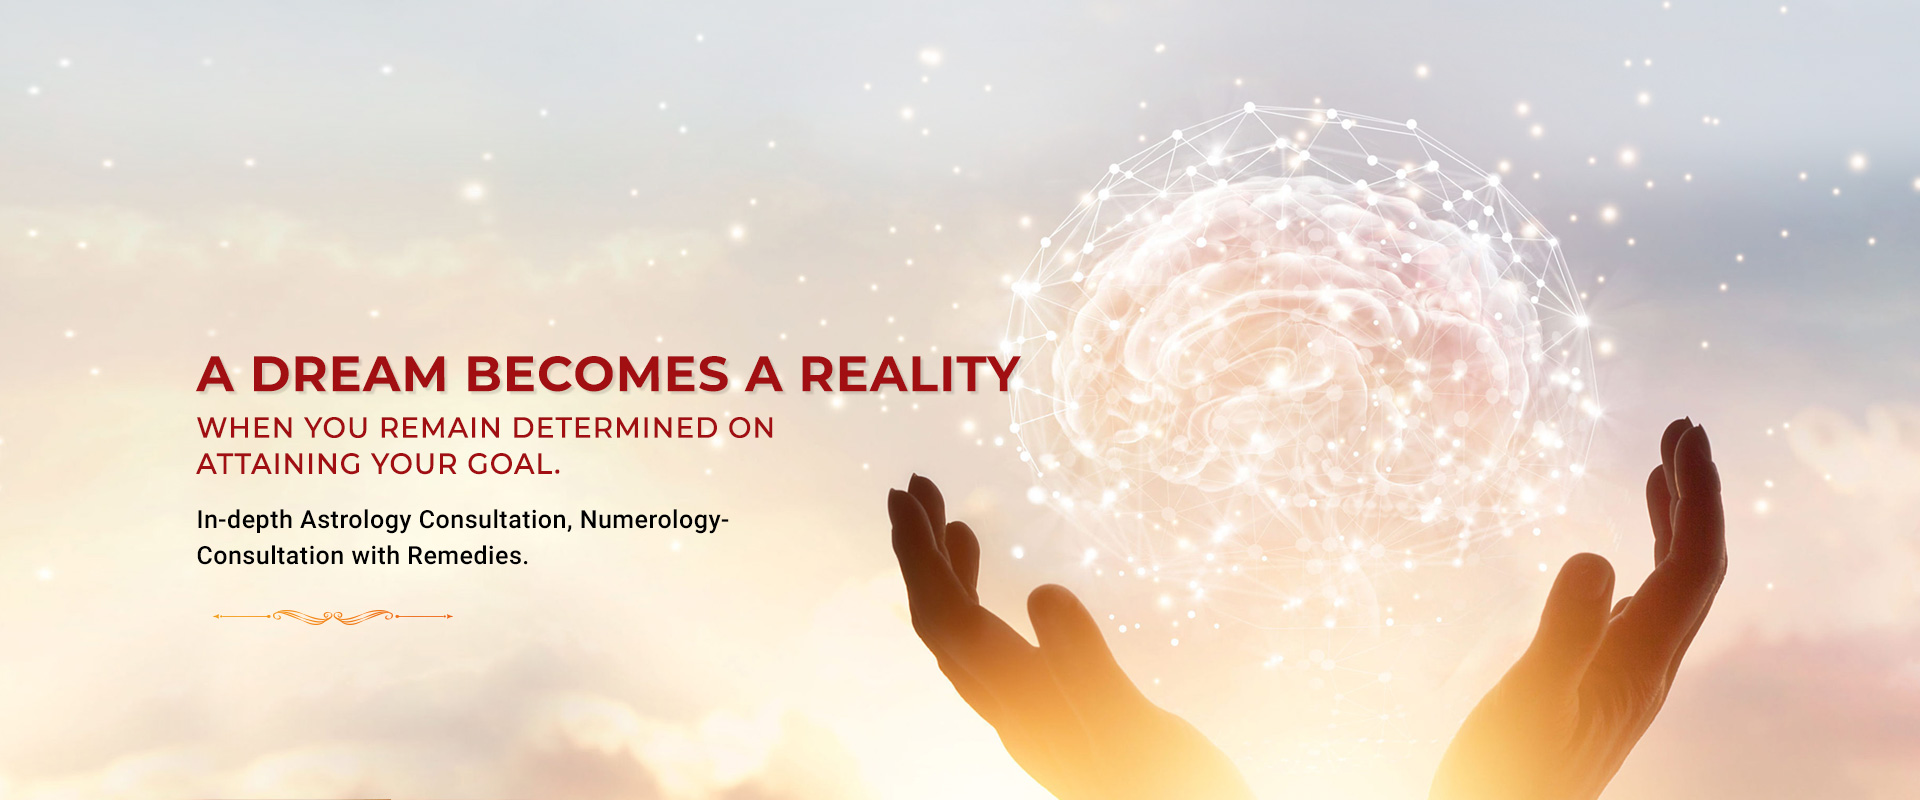 A Dream Becomes a reality, Astrology Online Prediction and Remedies